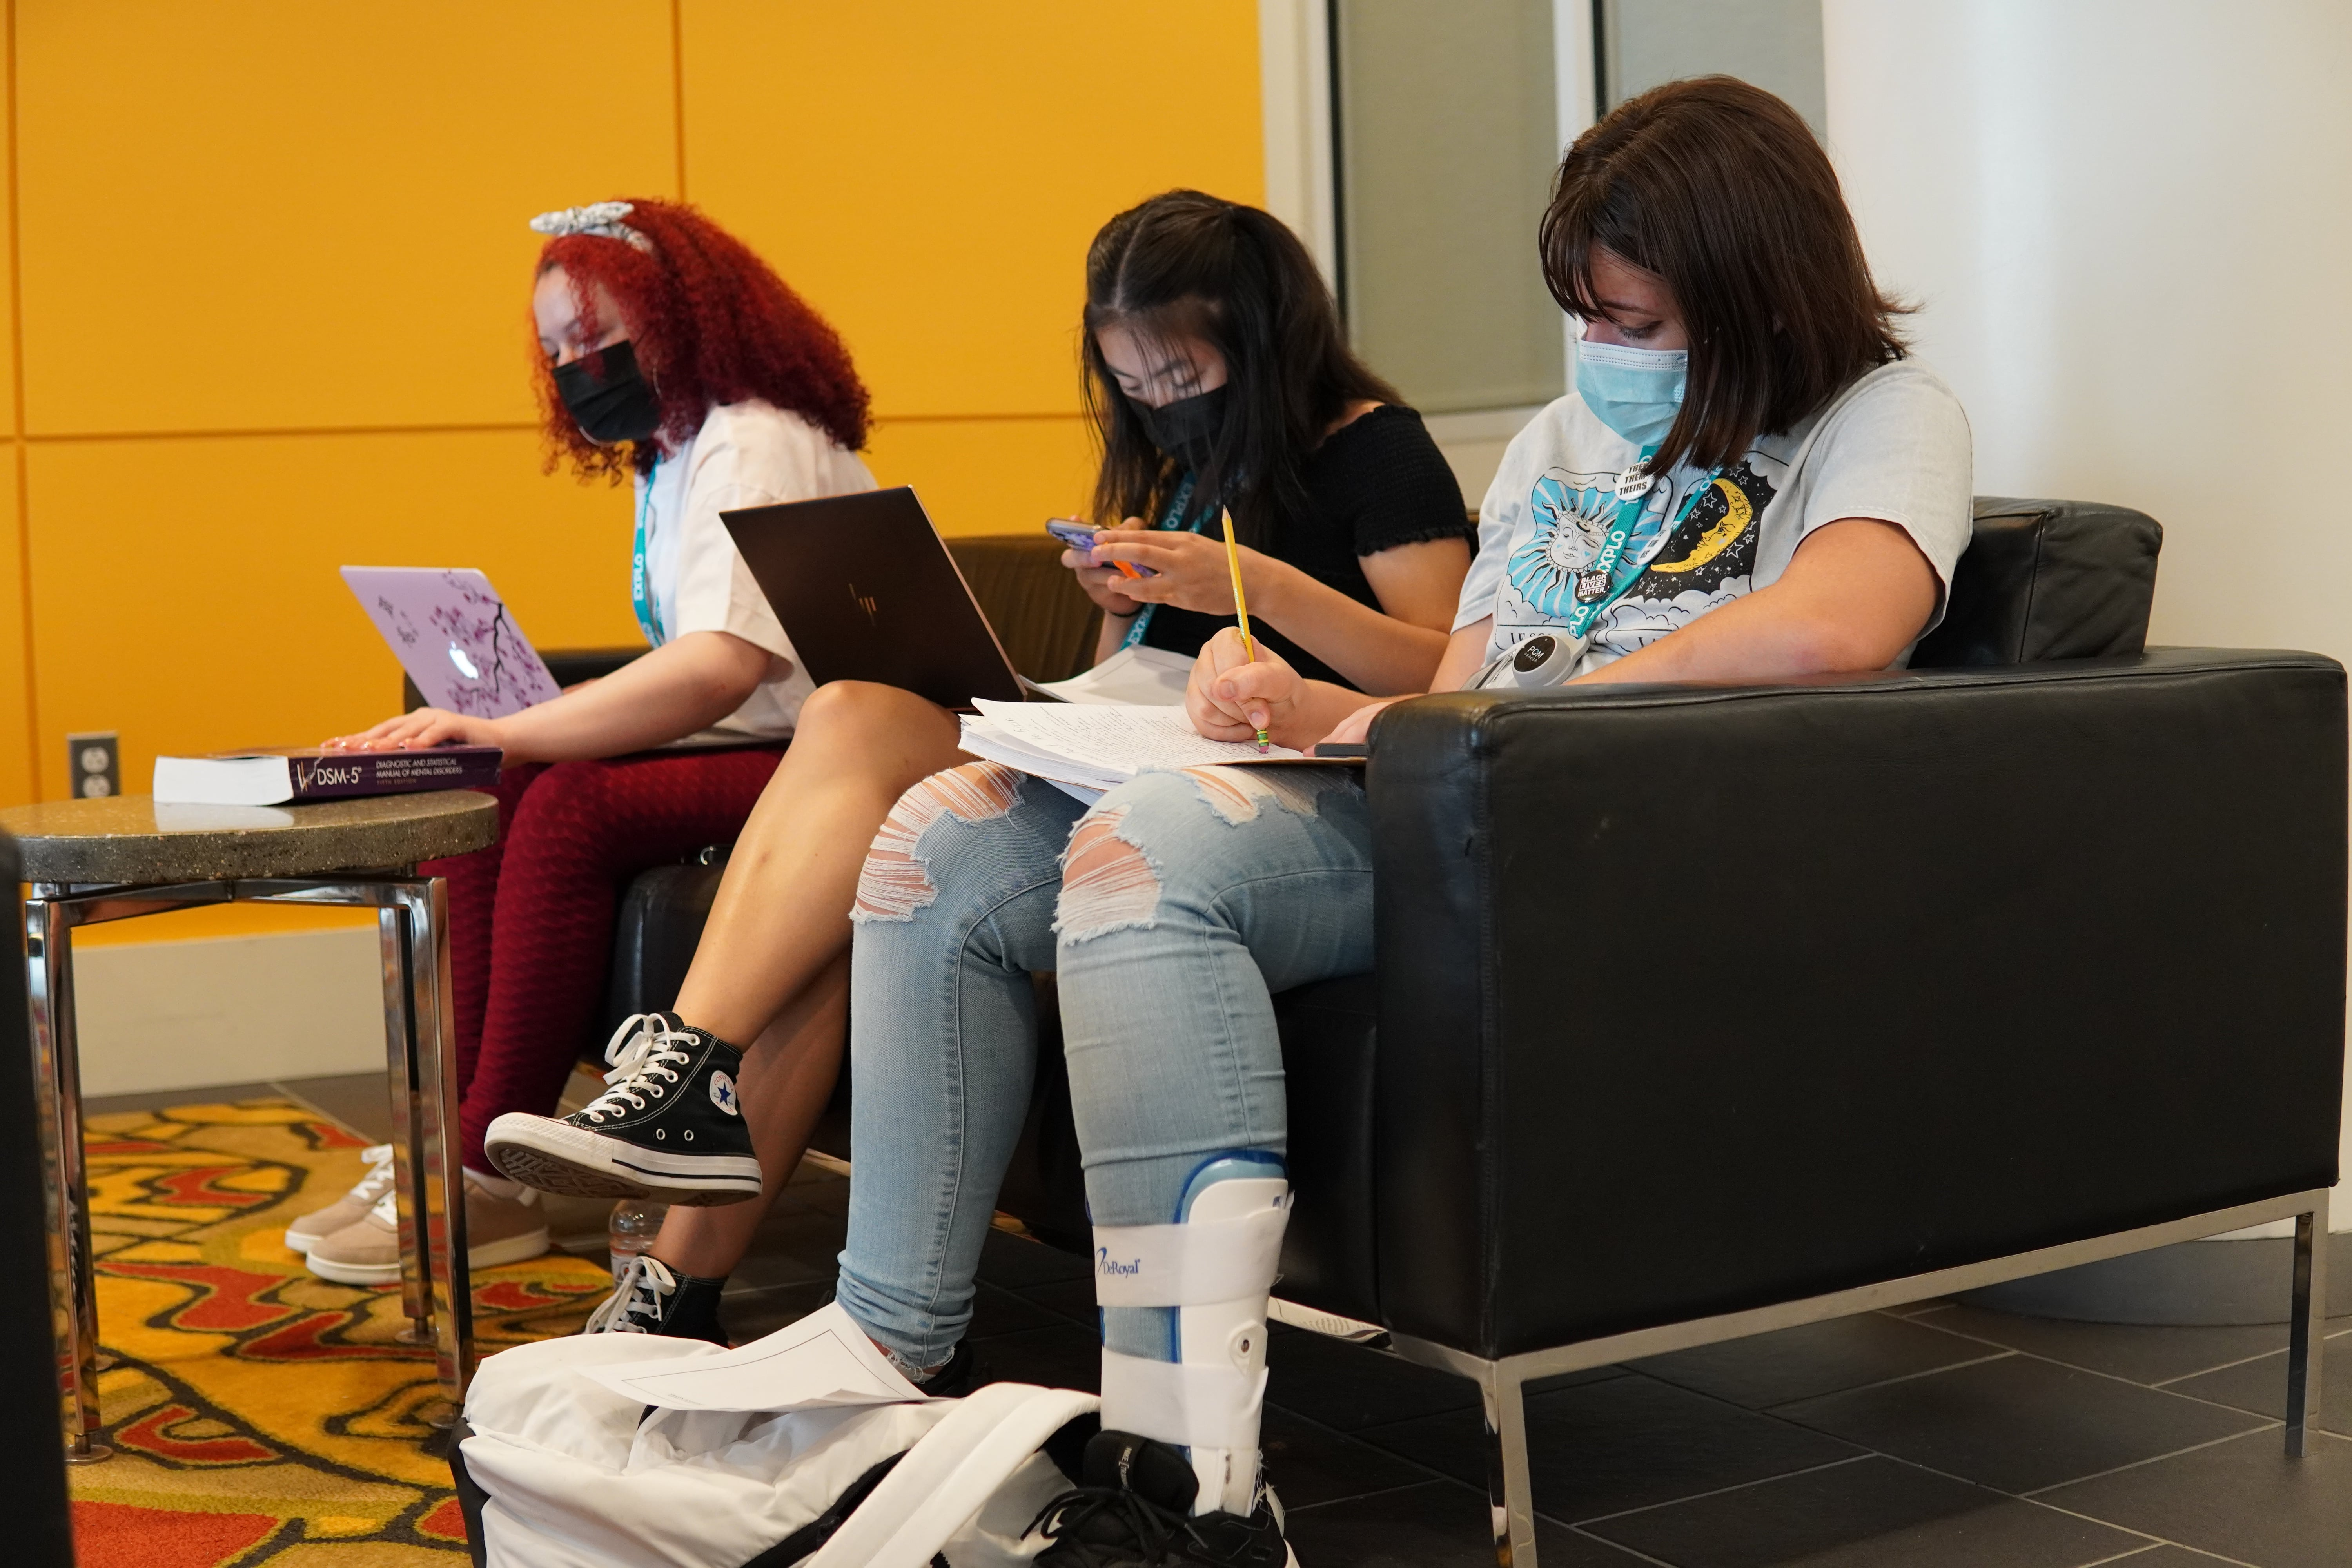 Three students sit on a couch together with their laptops open for research.